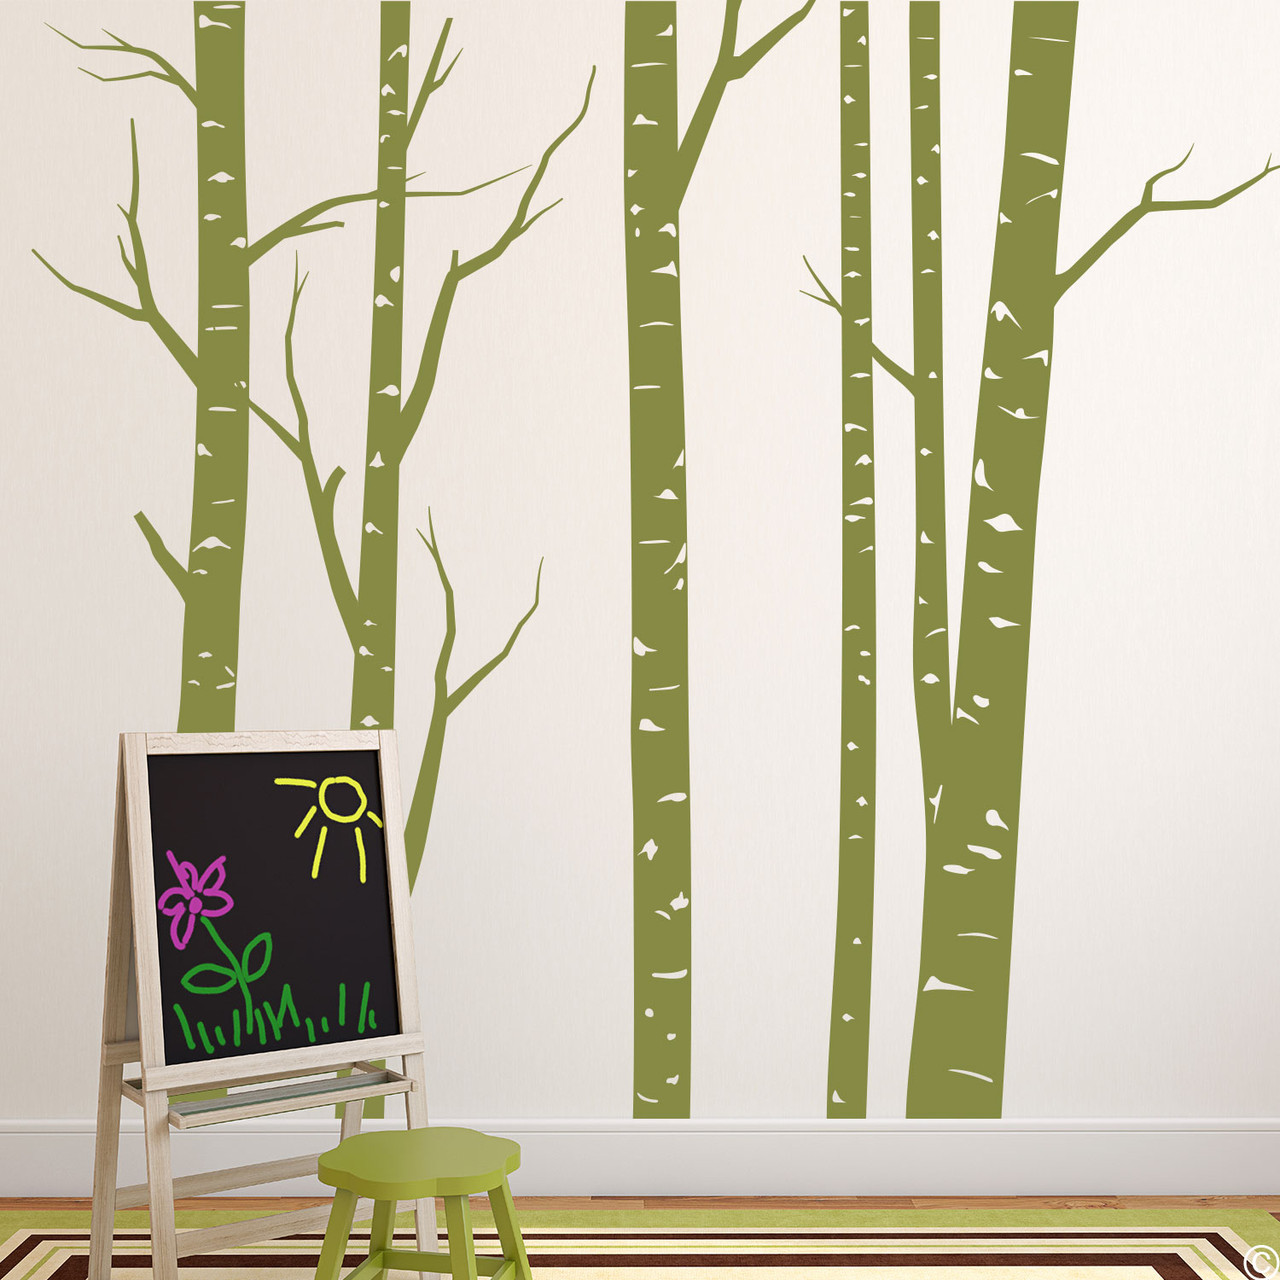 Aspen forest wall decal mural in limited edition marsh green vinyl color.